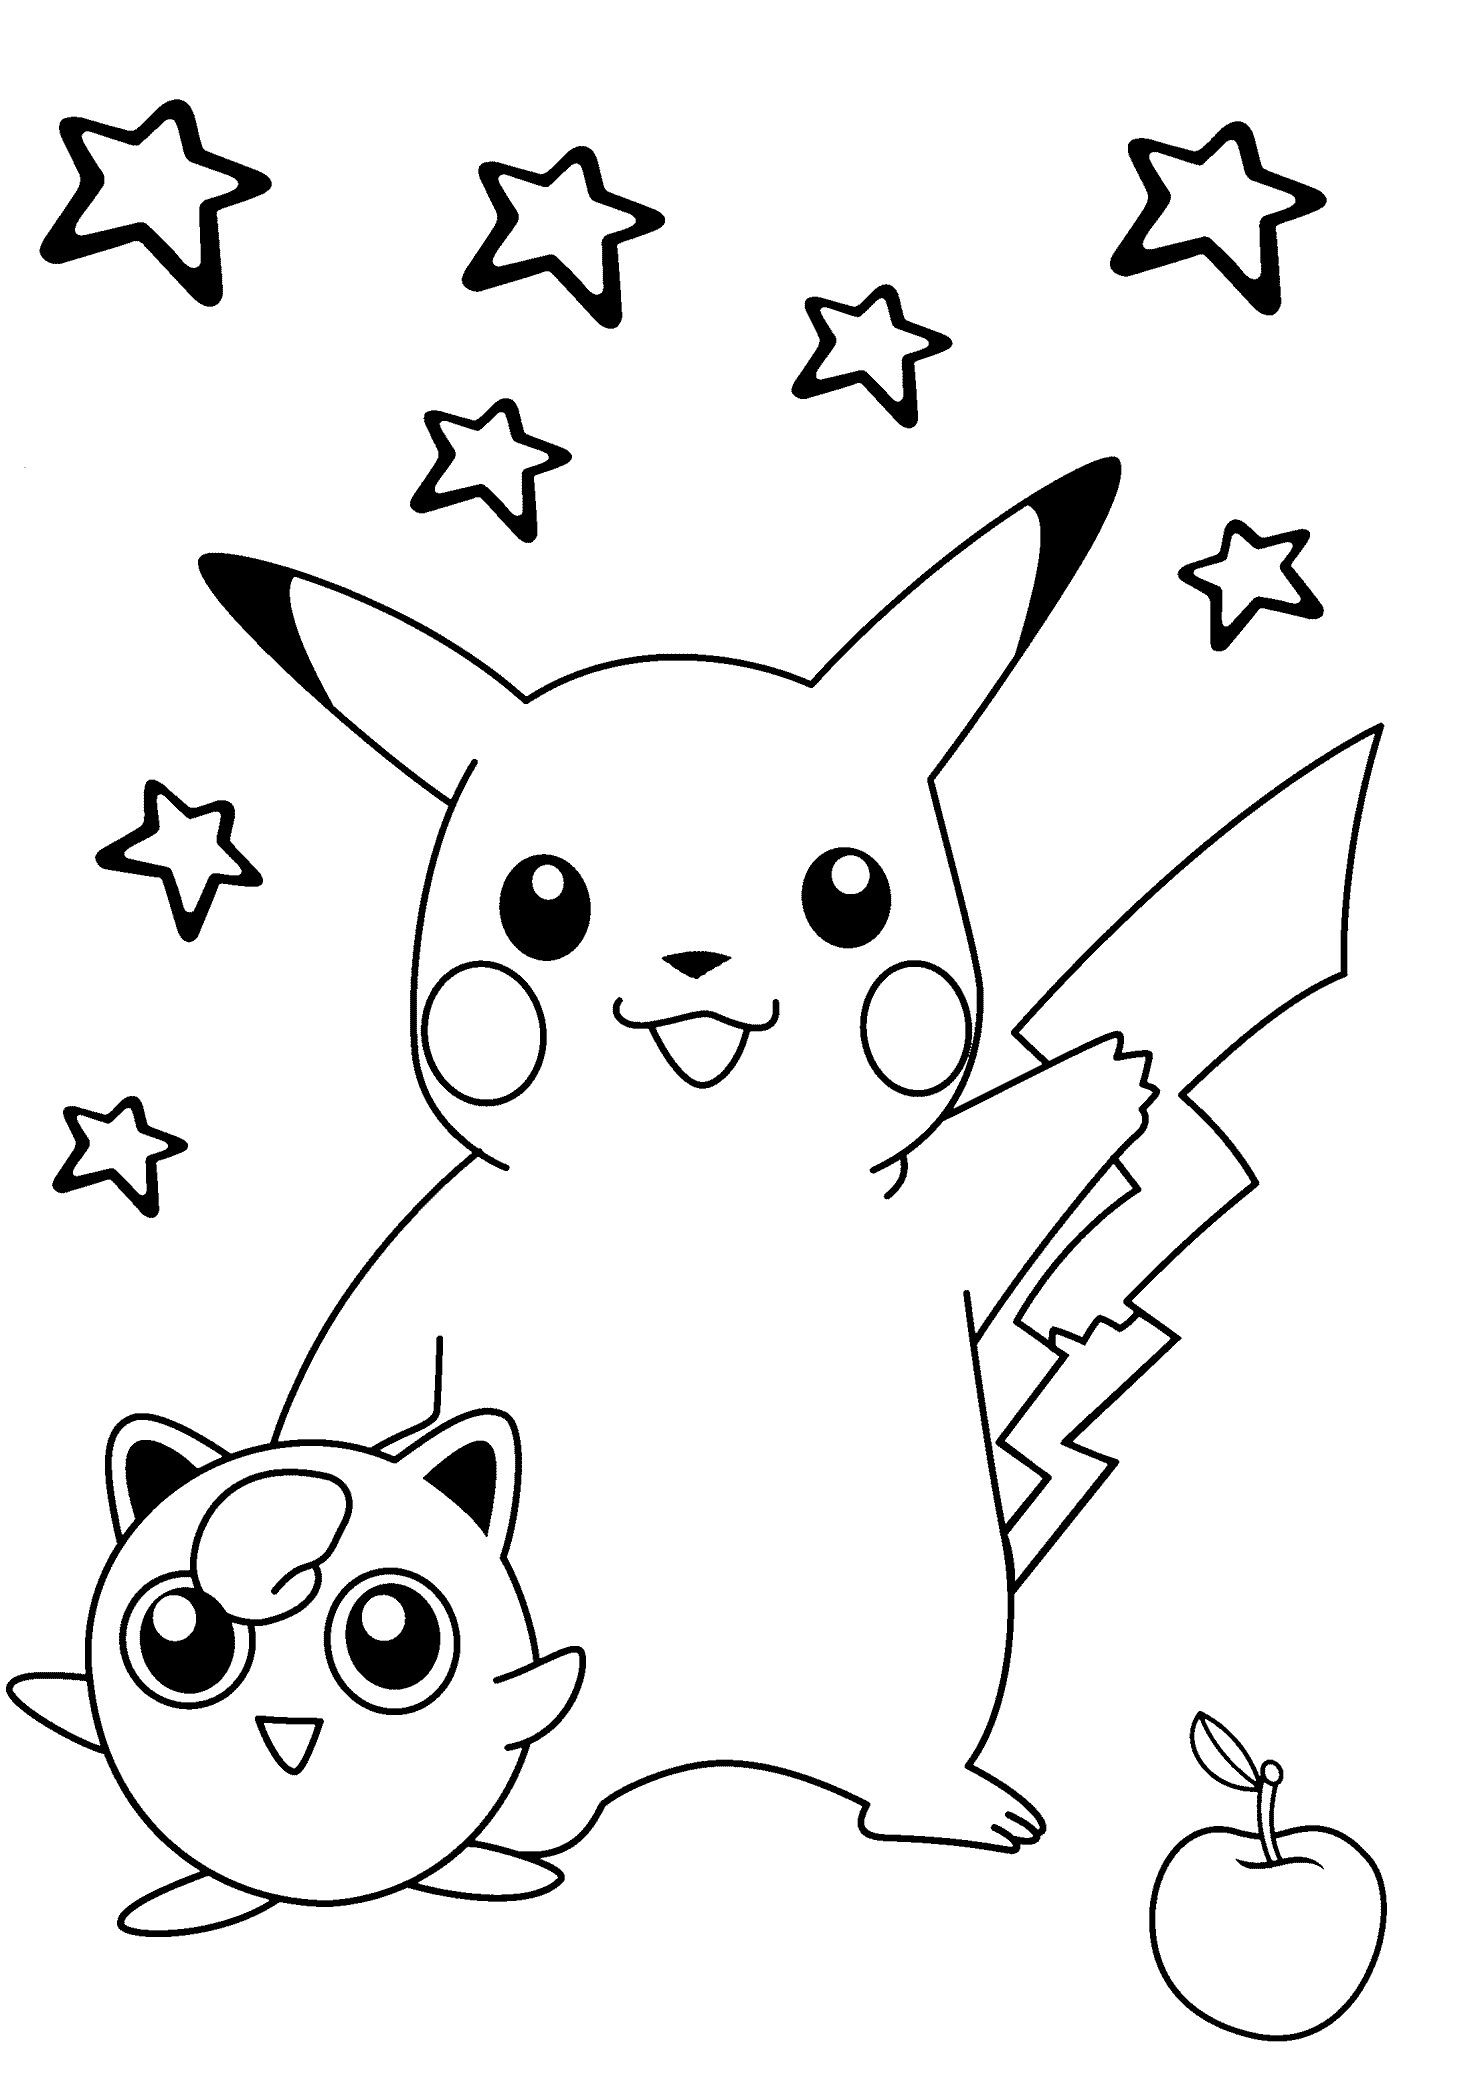 Pikachu Black And White Coloring Page From The Thousands Of Pictures On The Internet In Pikachu Coloring Page Pokemon Coloring Pages Pokemon Coloring Sheets